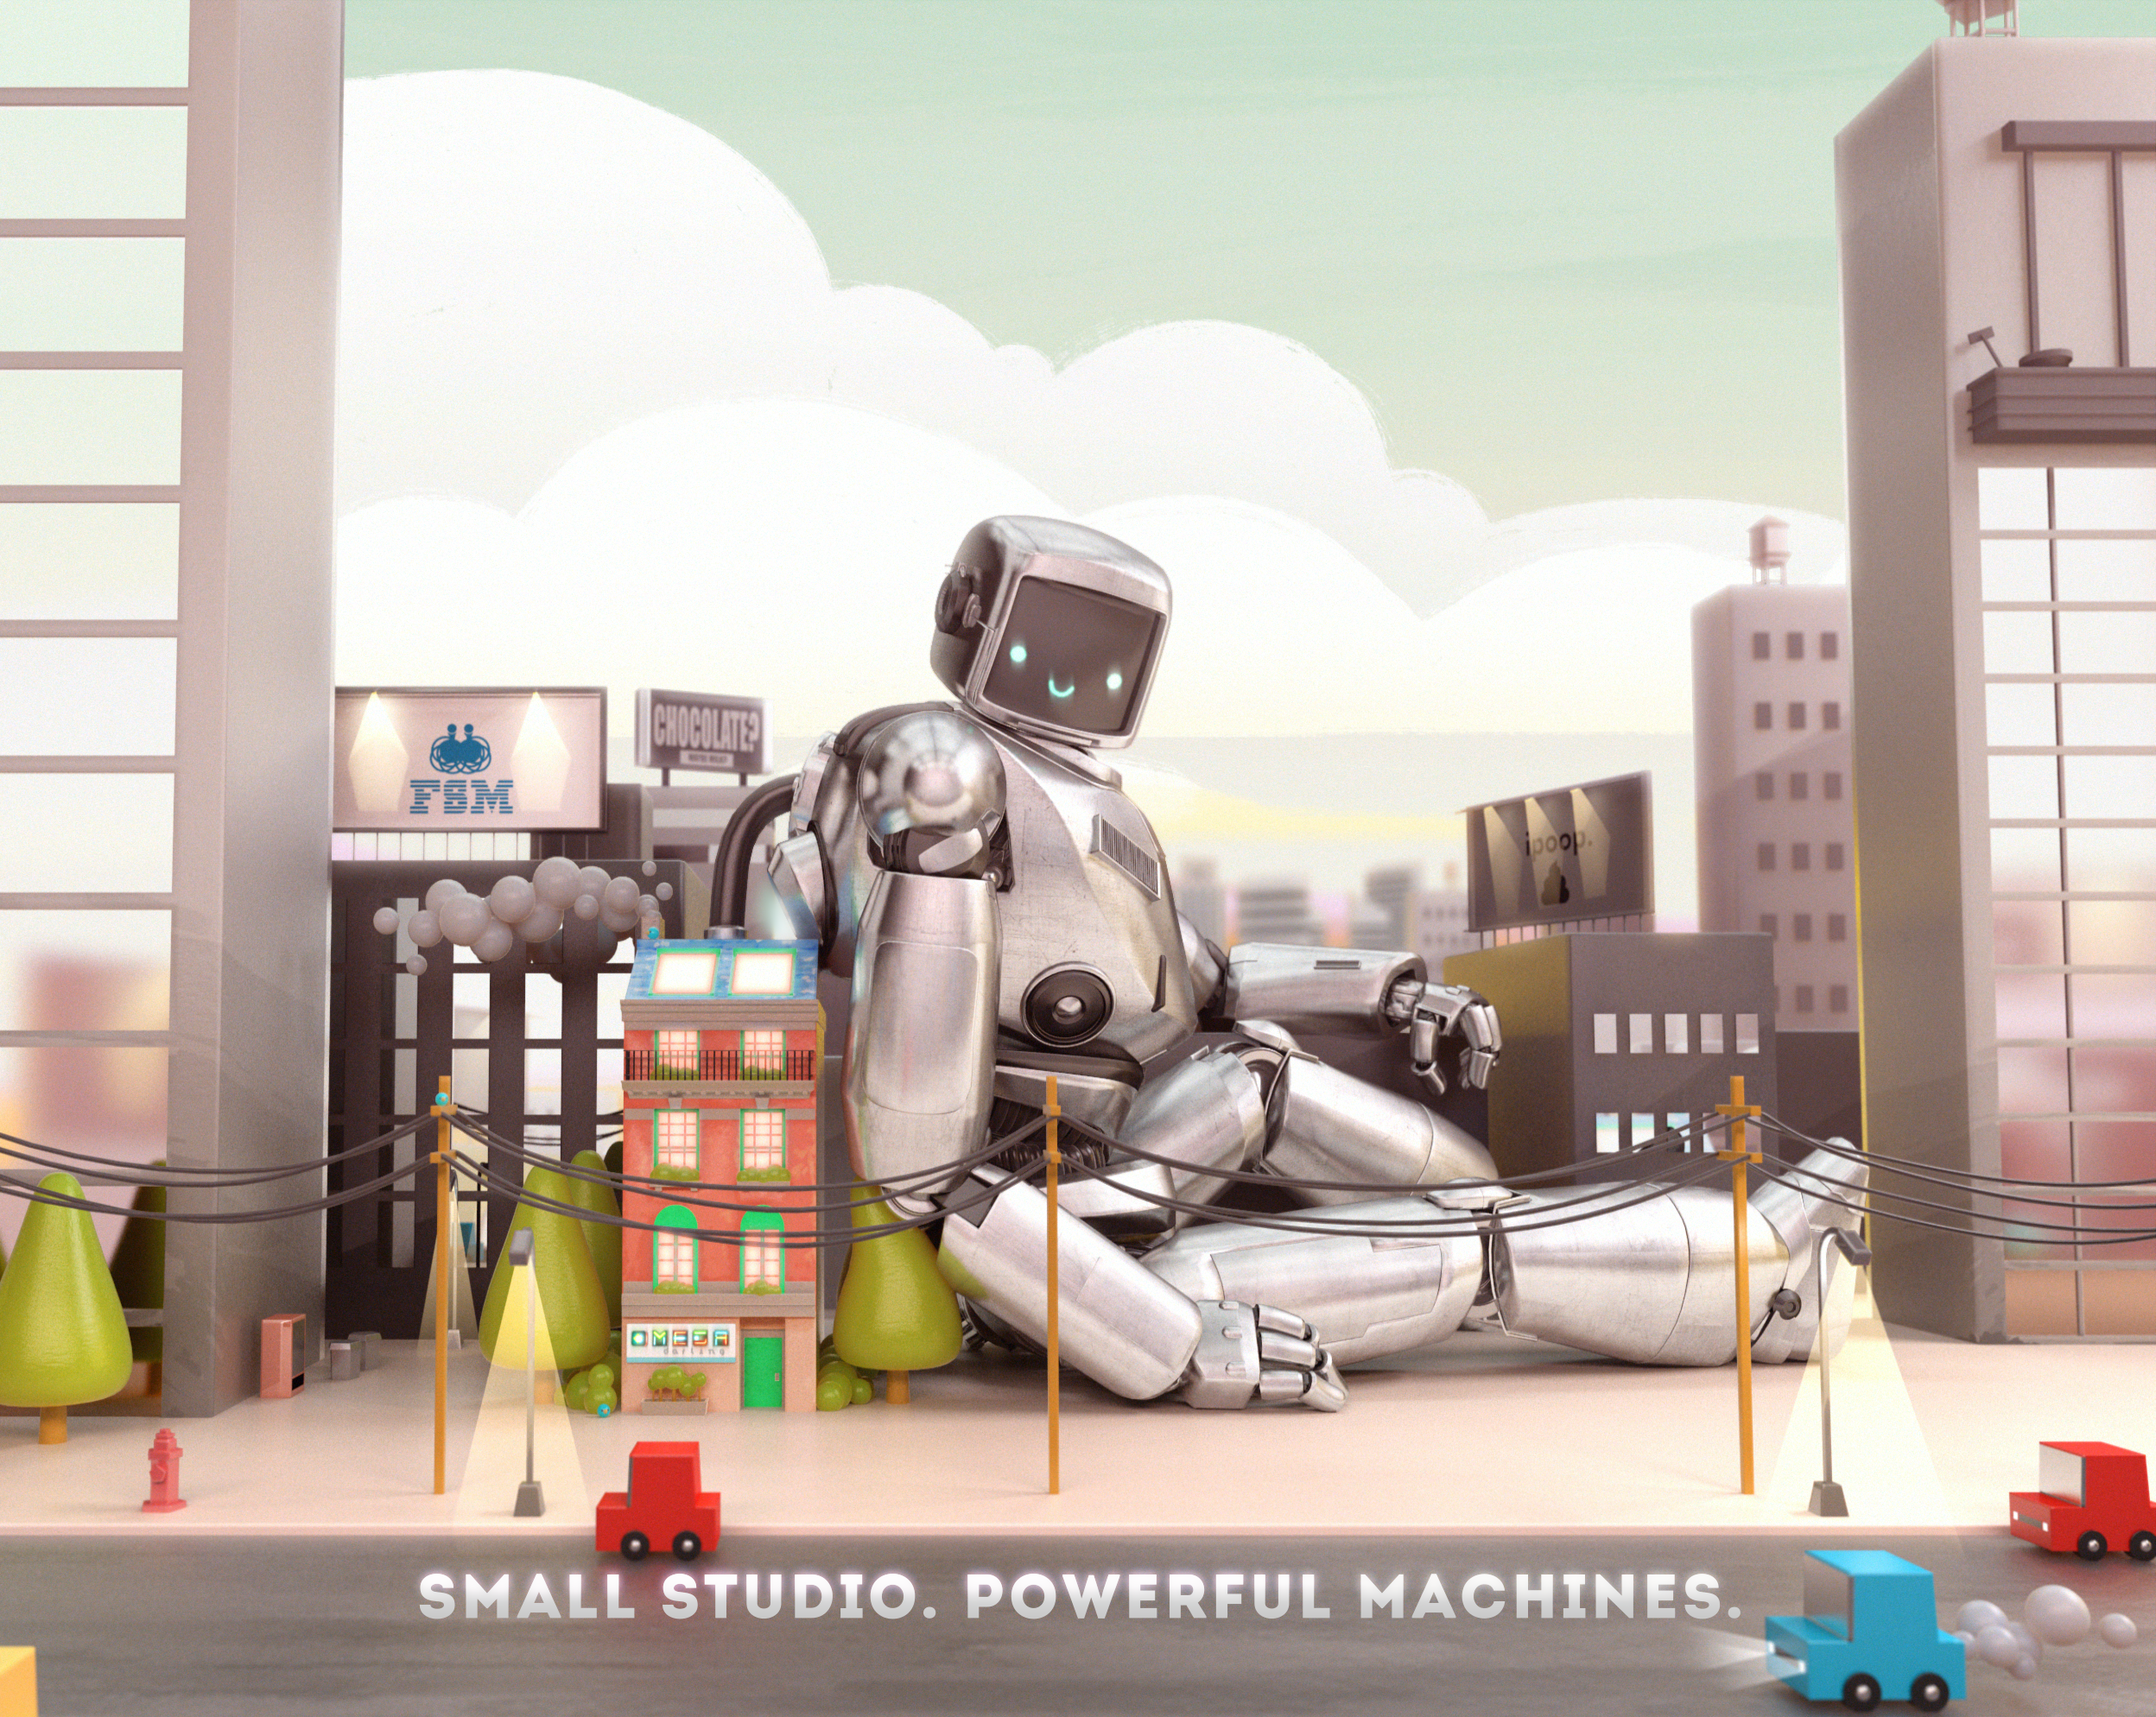 powerful_machines_01.png